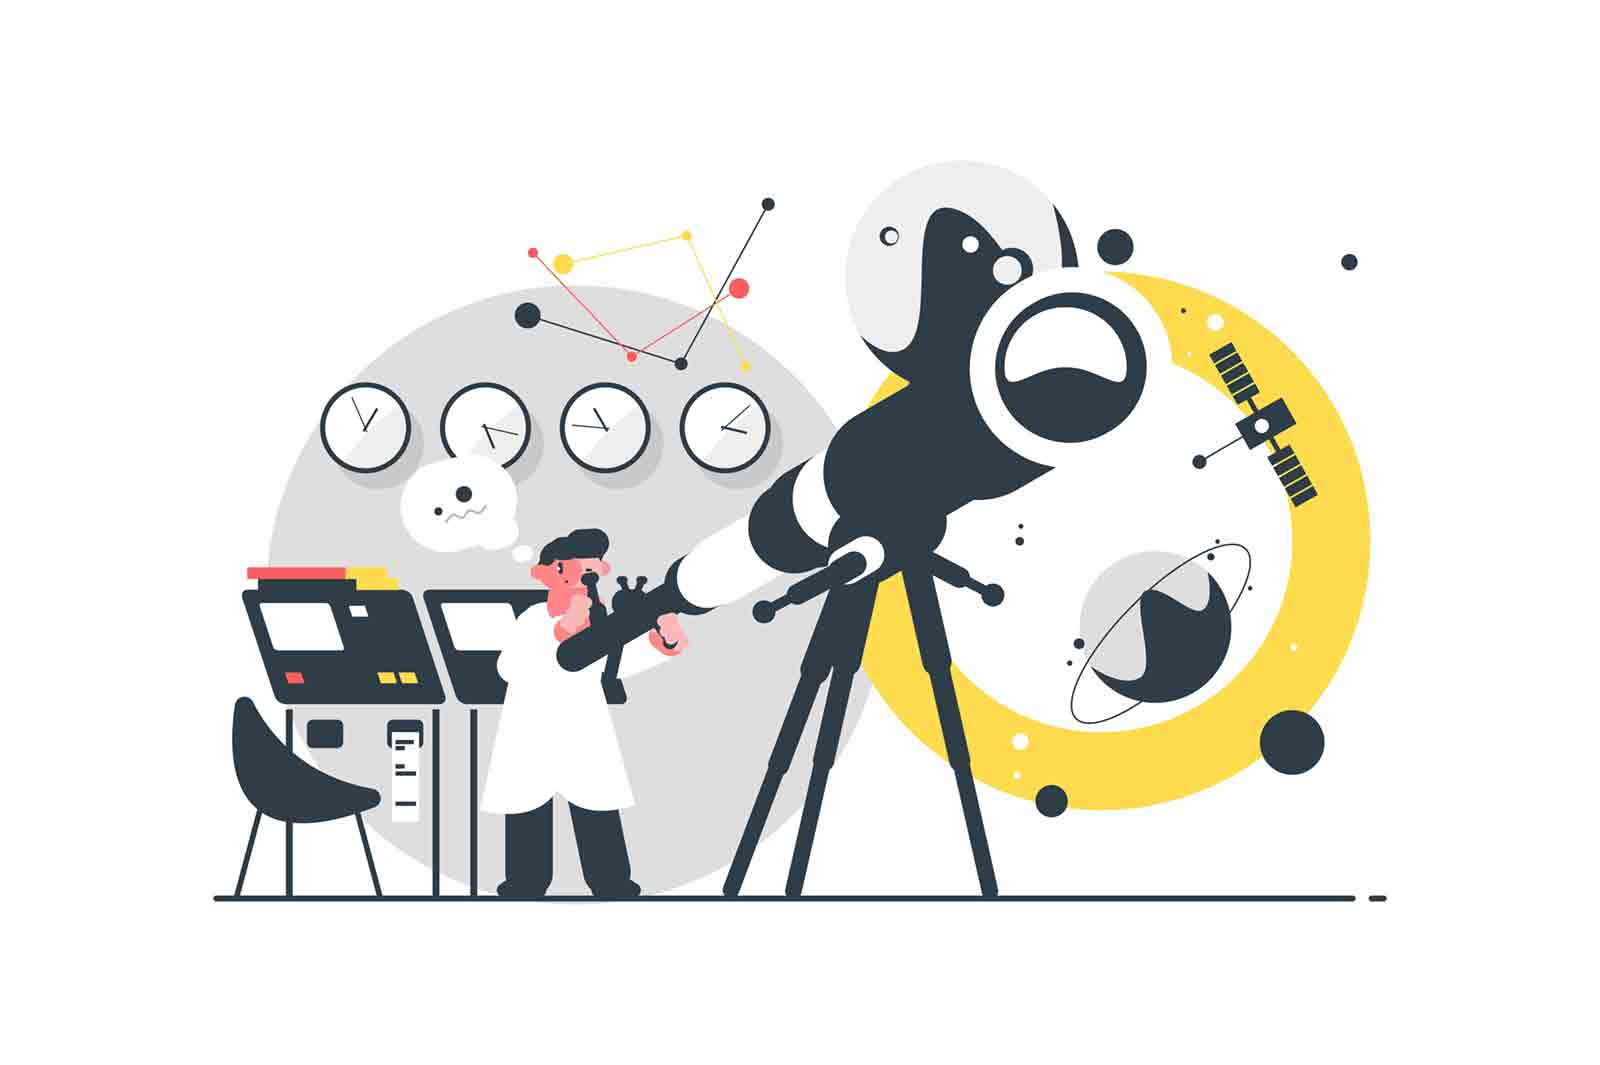 Astronomer watching stars vector illustration. Specialist searching constellations via telescope in modern observatory flat style design. Study of astronomy concept